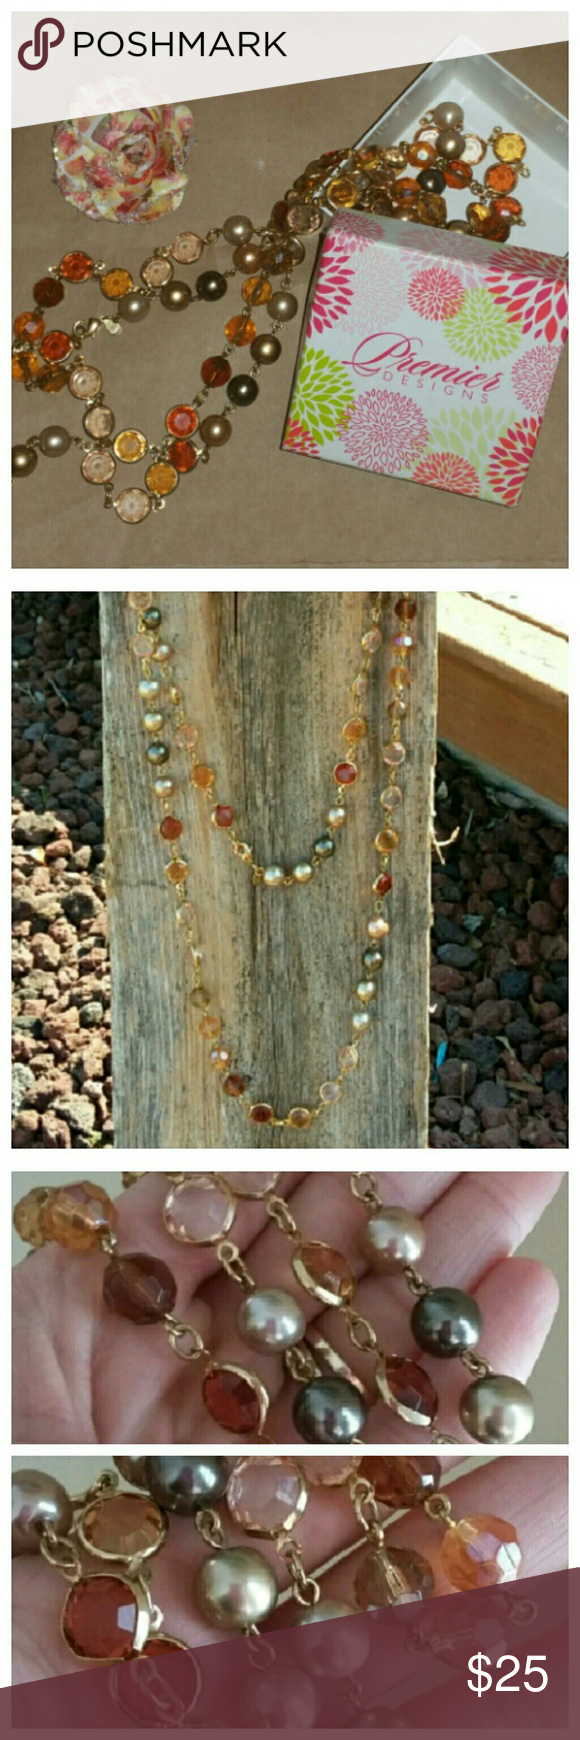 """Premier Long Necklace Necklace is long. Meant to be doubledlayered. Shades of brown beads and pearls with gold. Box included with necklace. 60"""" long  Only worn twice. Premier Designs Jewelry Necklaces"""